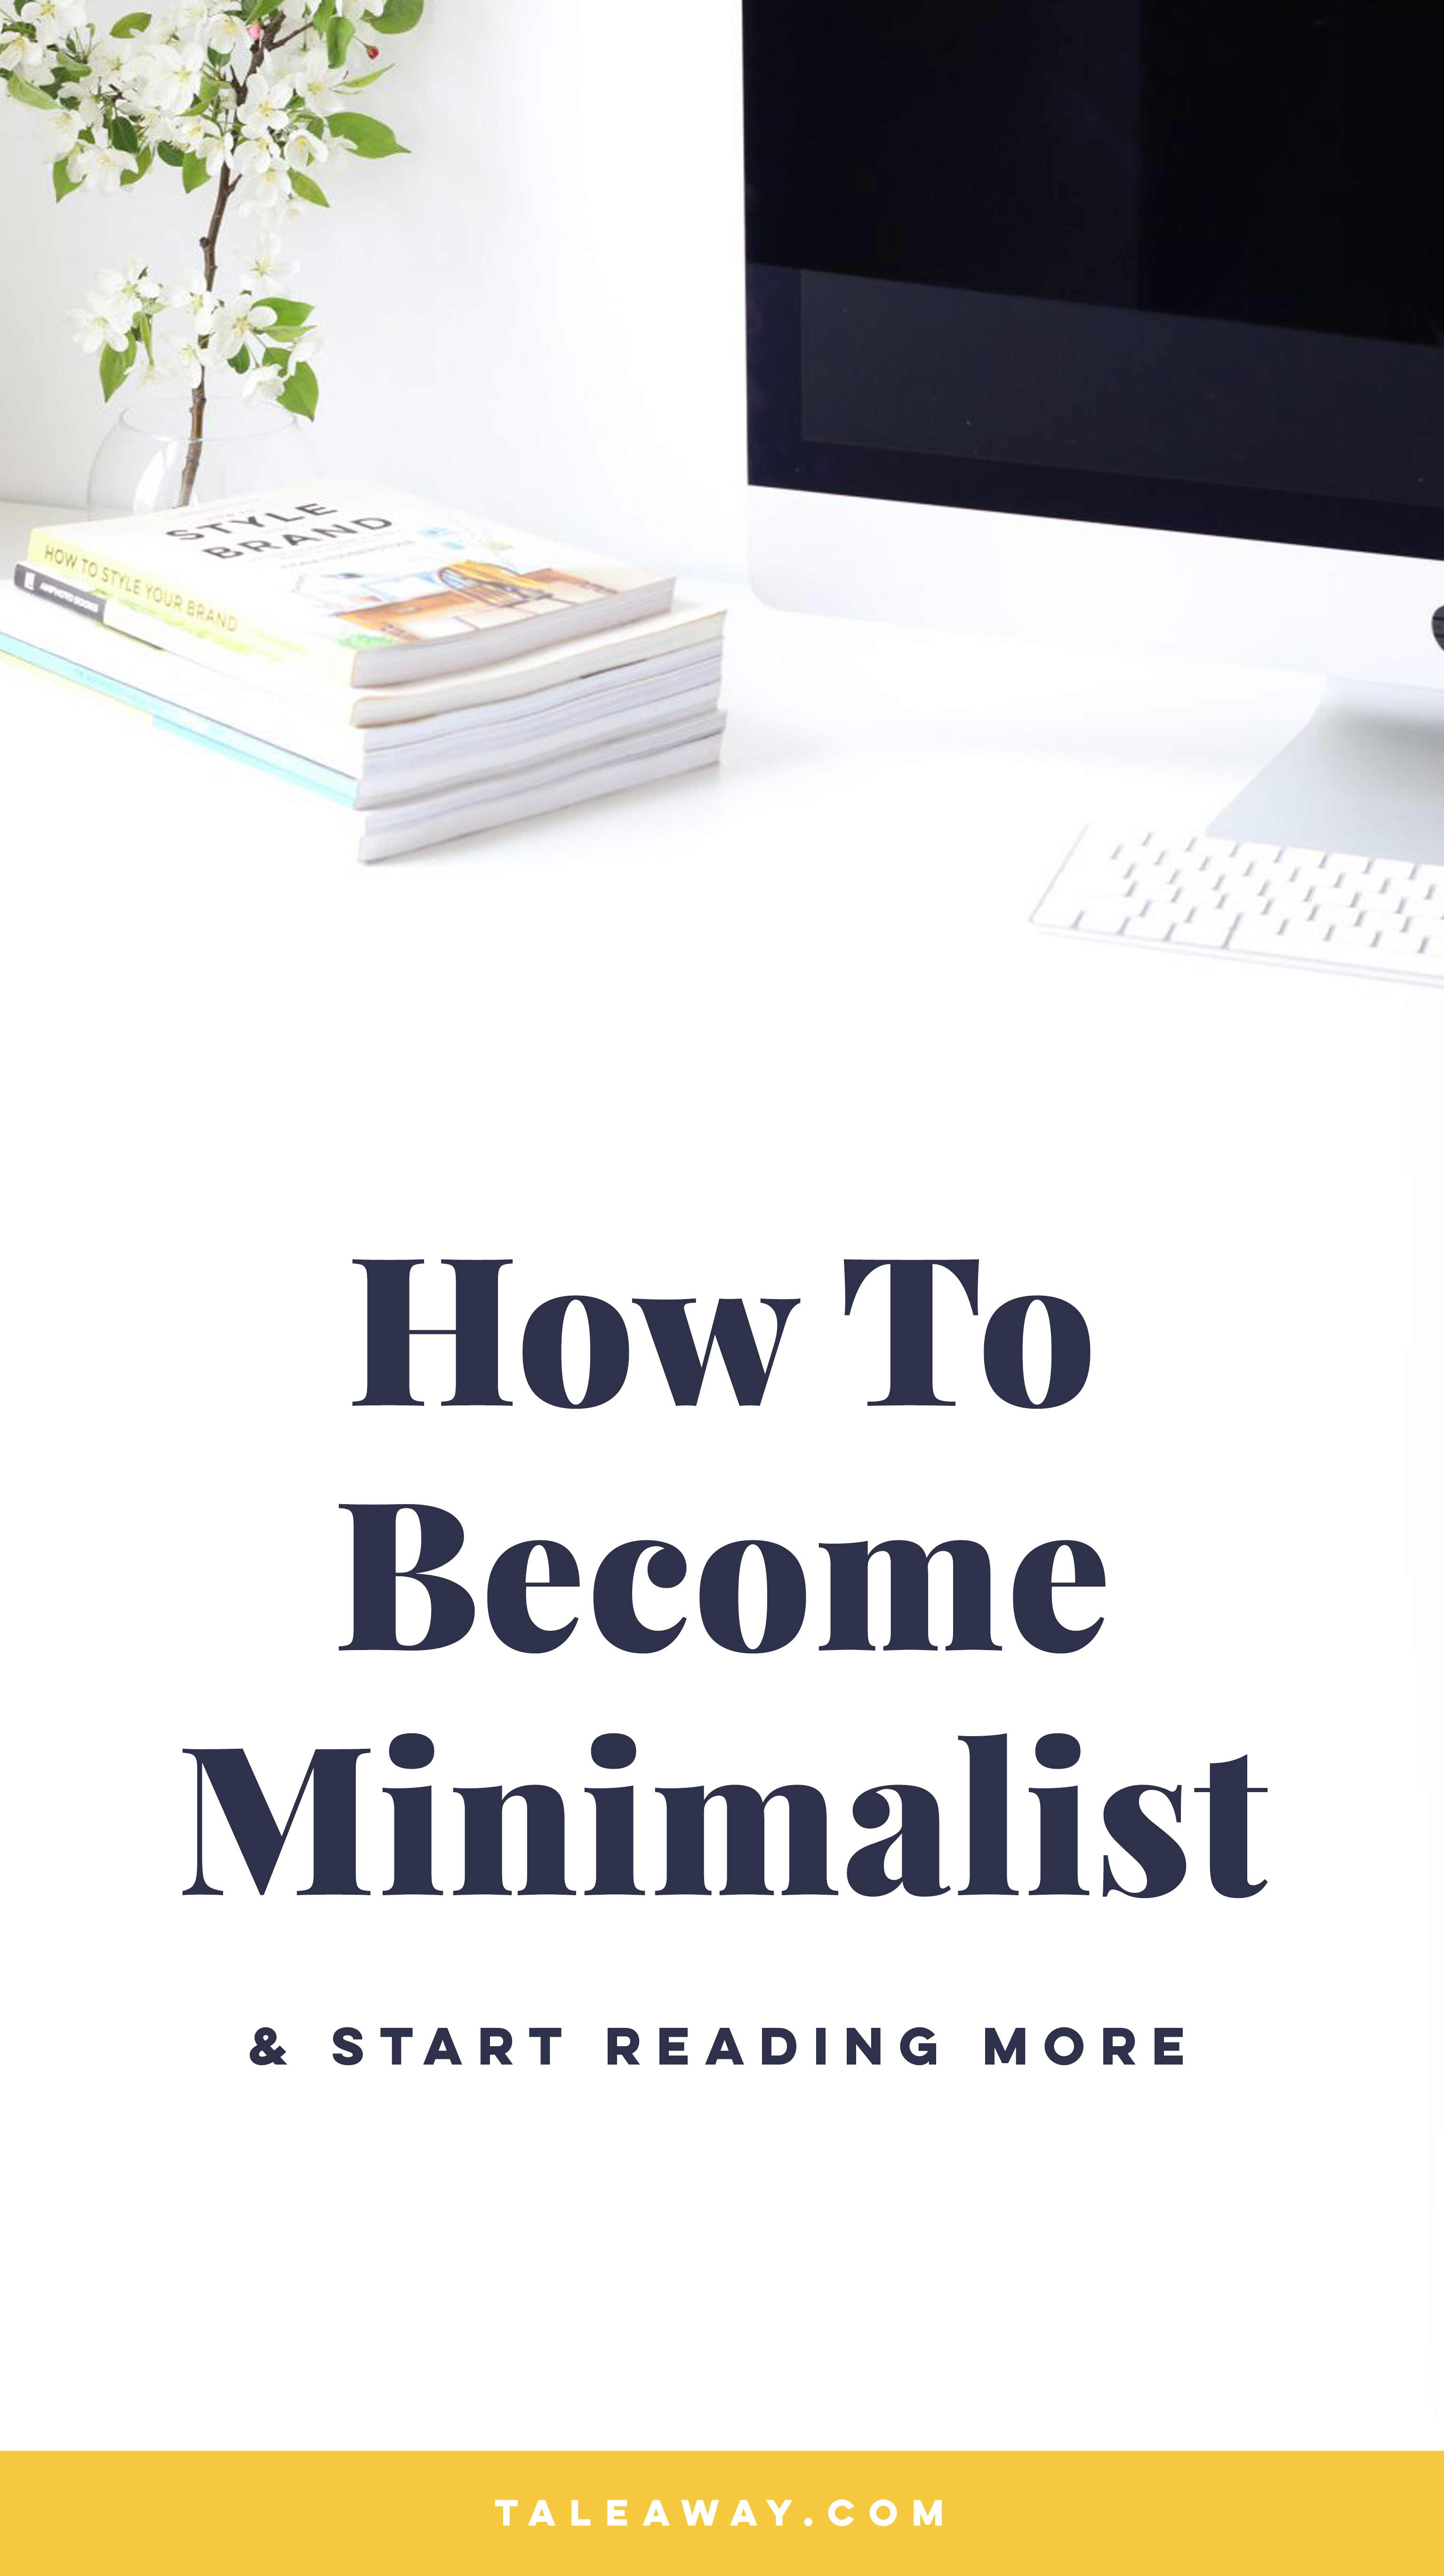 How To Become Minimalist and Start Reading More - A guide to minimalism for people who love books. For more reading ideas visit www.taleway.com to find books set around the world. Ideas for those who like to travel, both in life and in fiction. minimalism, books, minimalism books, how to become minimalist, minimalism lifestyle, minimalism home, minimalism for beginners, minimalism guide, minimalism how to, minimalism inspiration